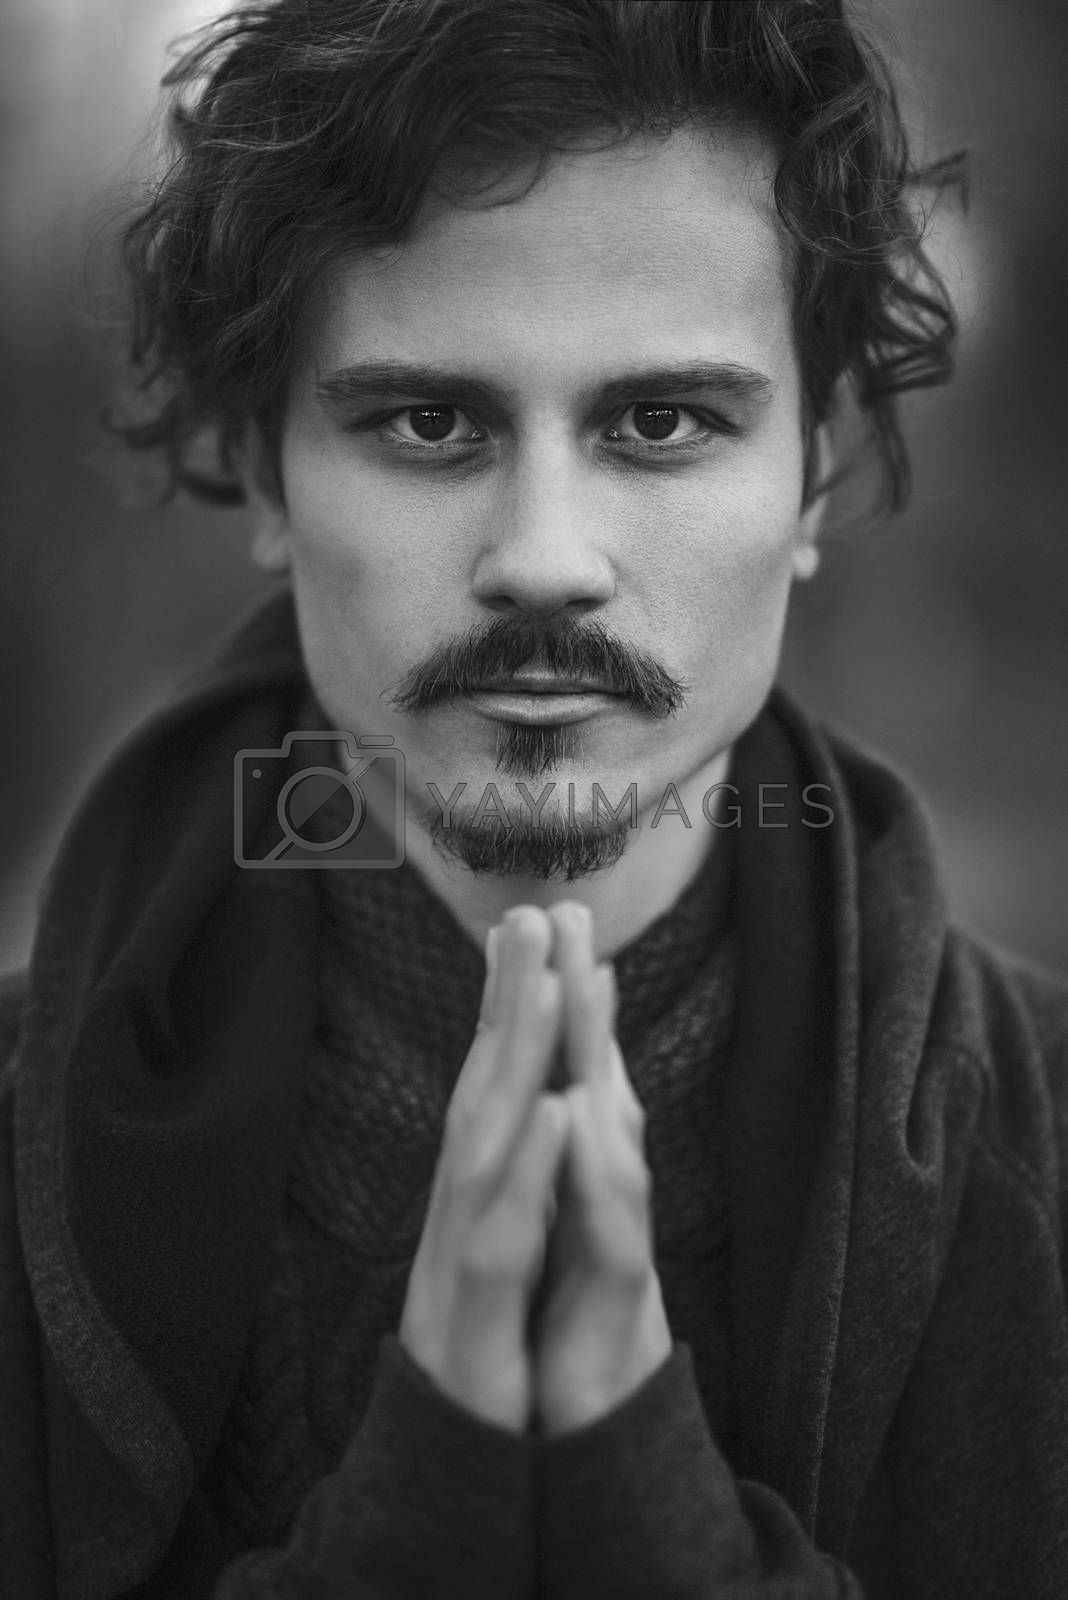 Royalty free image of Handsome young curly man sincerely praying. religion concept by Nickstock